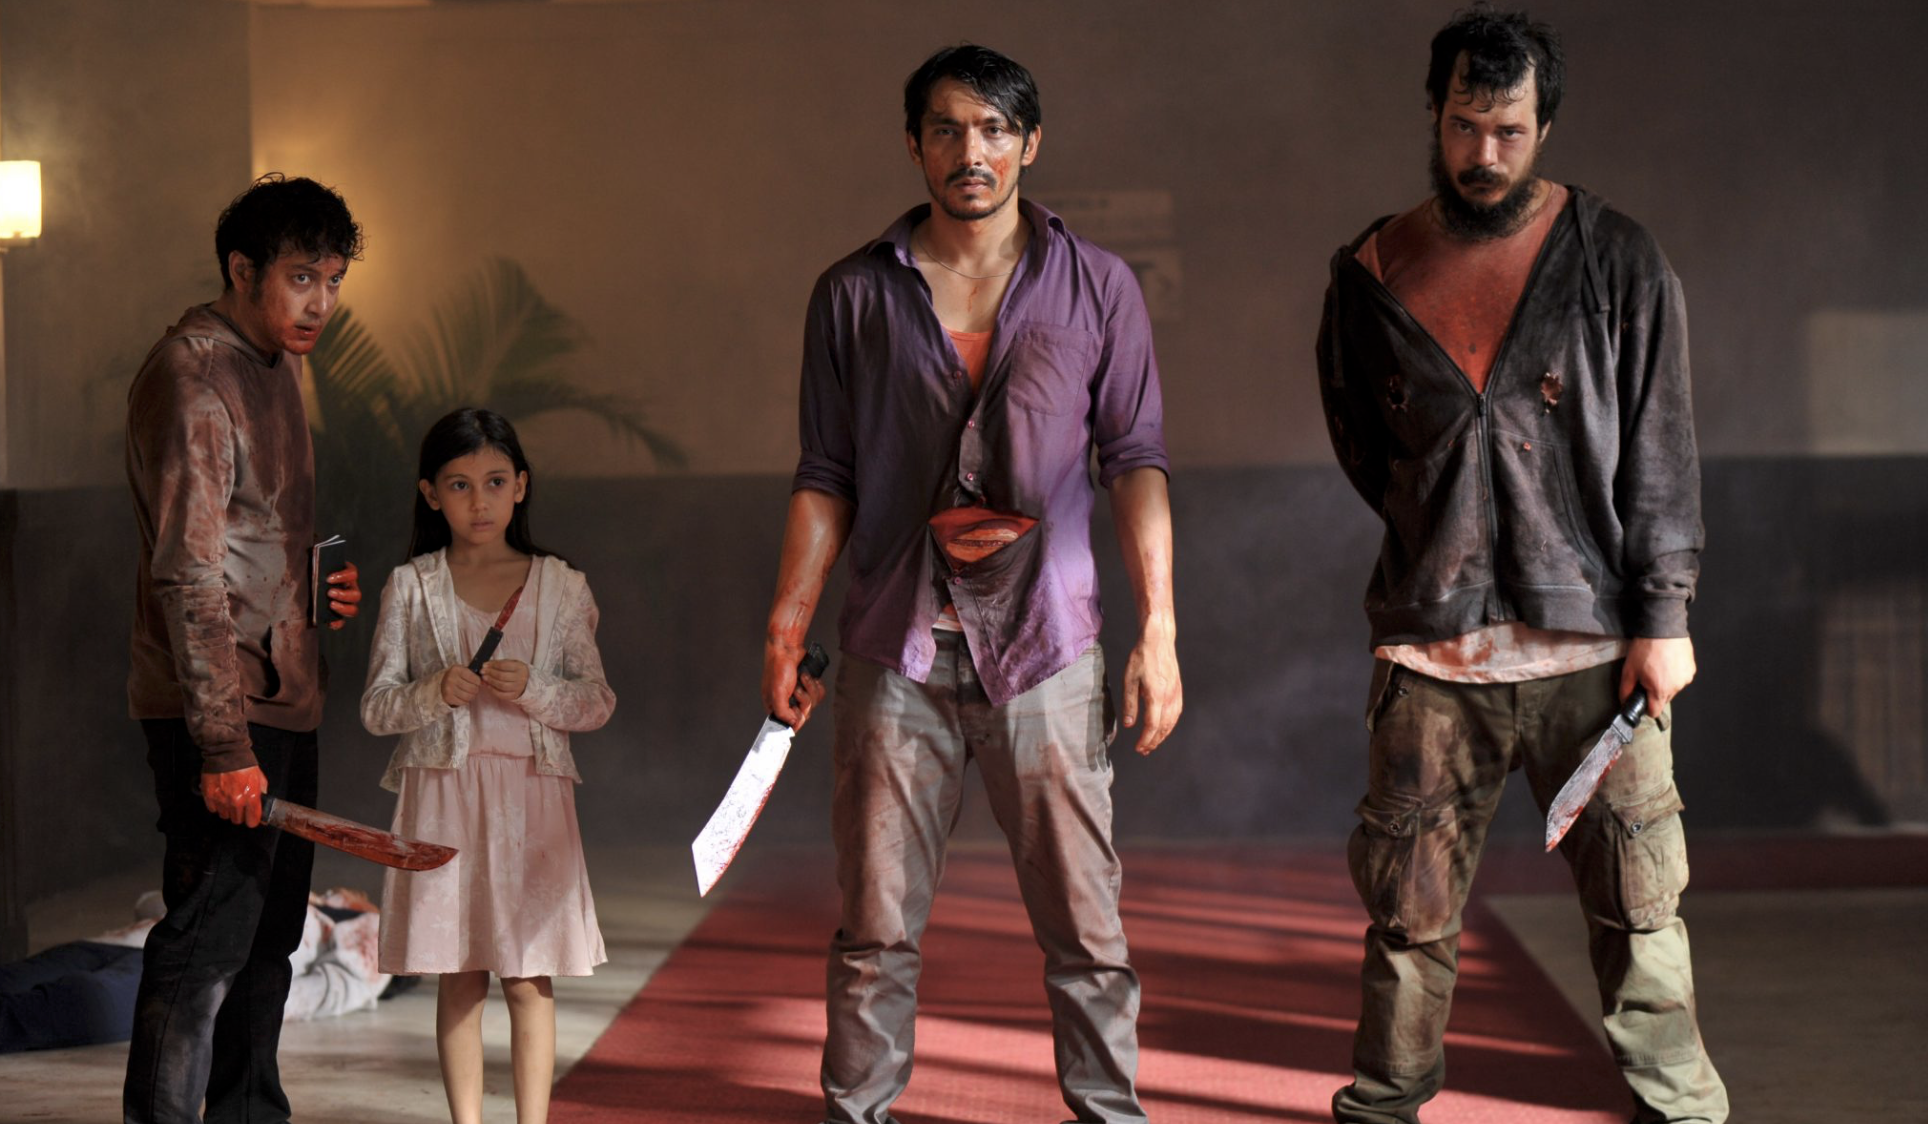 'The Night Comes for Us' Review: The Cast of 'The Raid' Crash Netflix with a Numbingly Relentless Action Movie